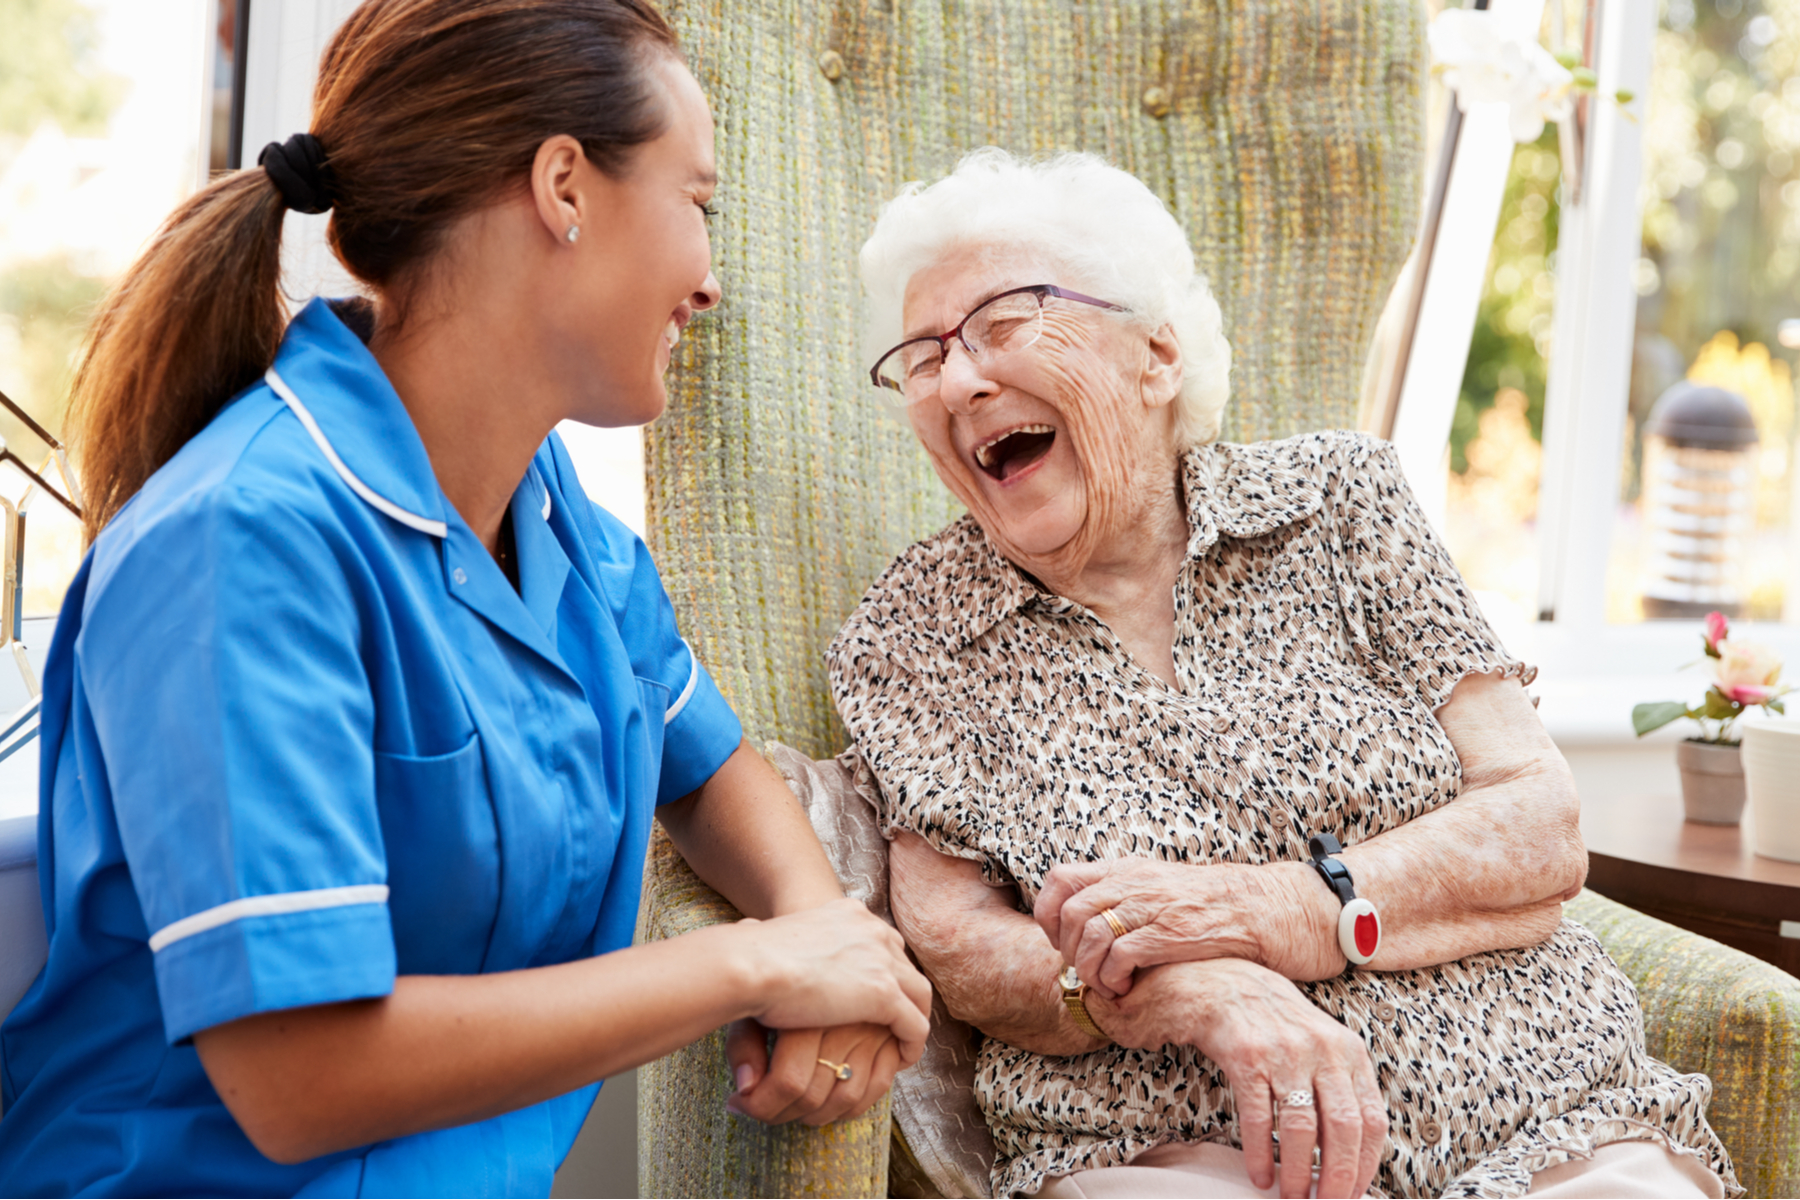 Journey working in the care sector